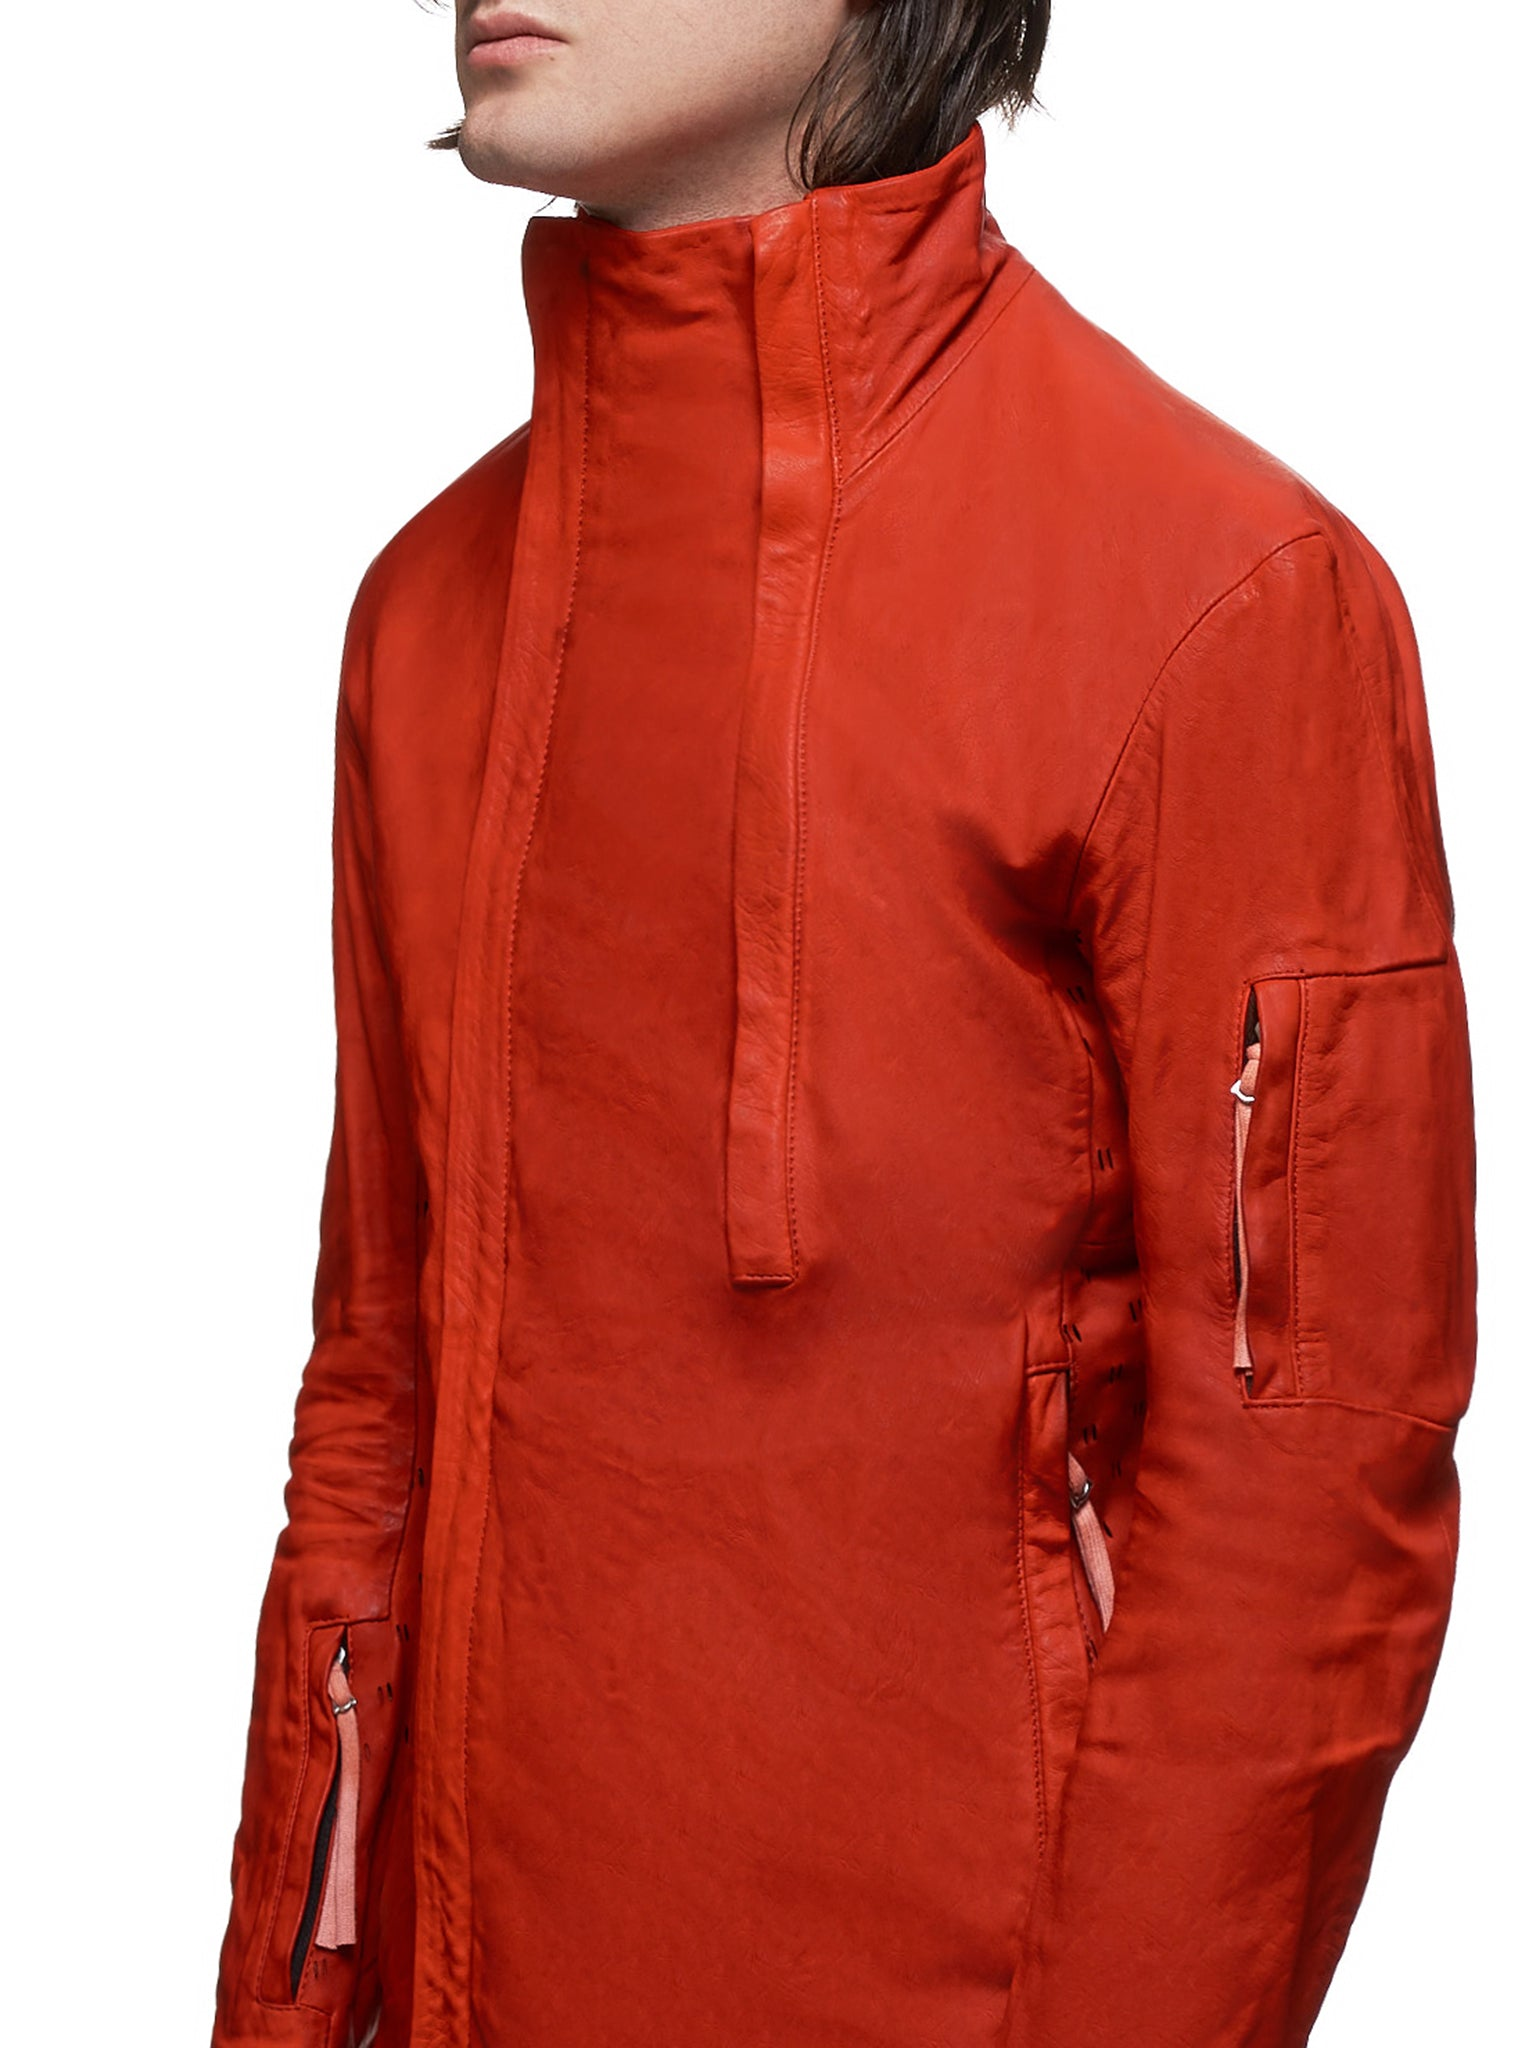 Boris Bidjan Saberi J5 Leather Jacket  - Hlorenzo Detail 1